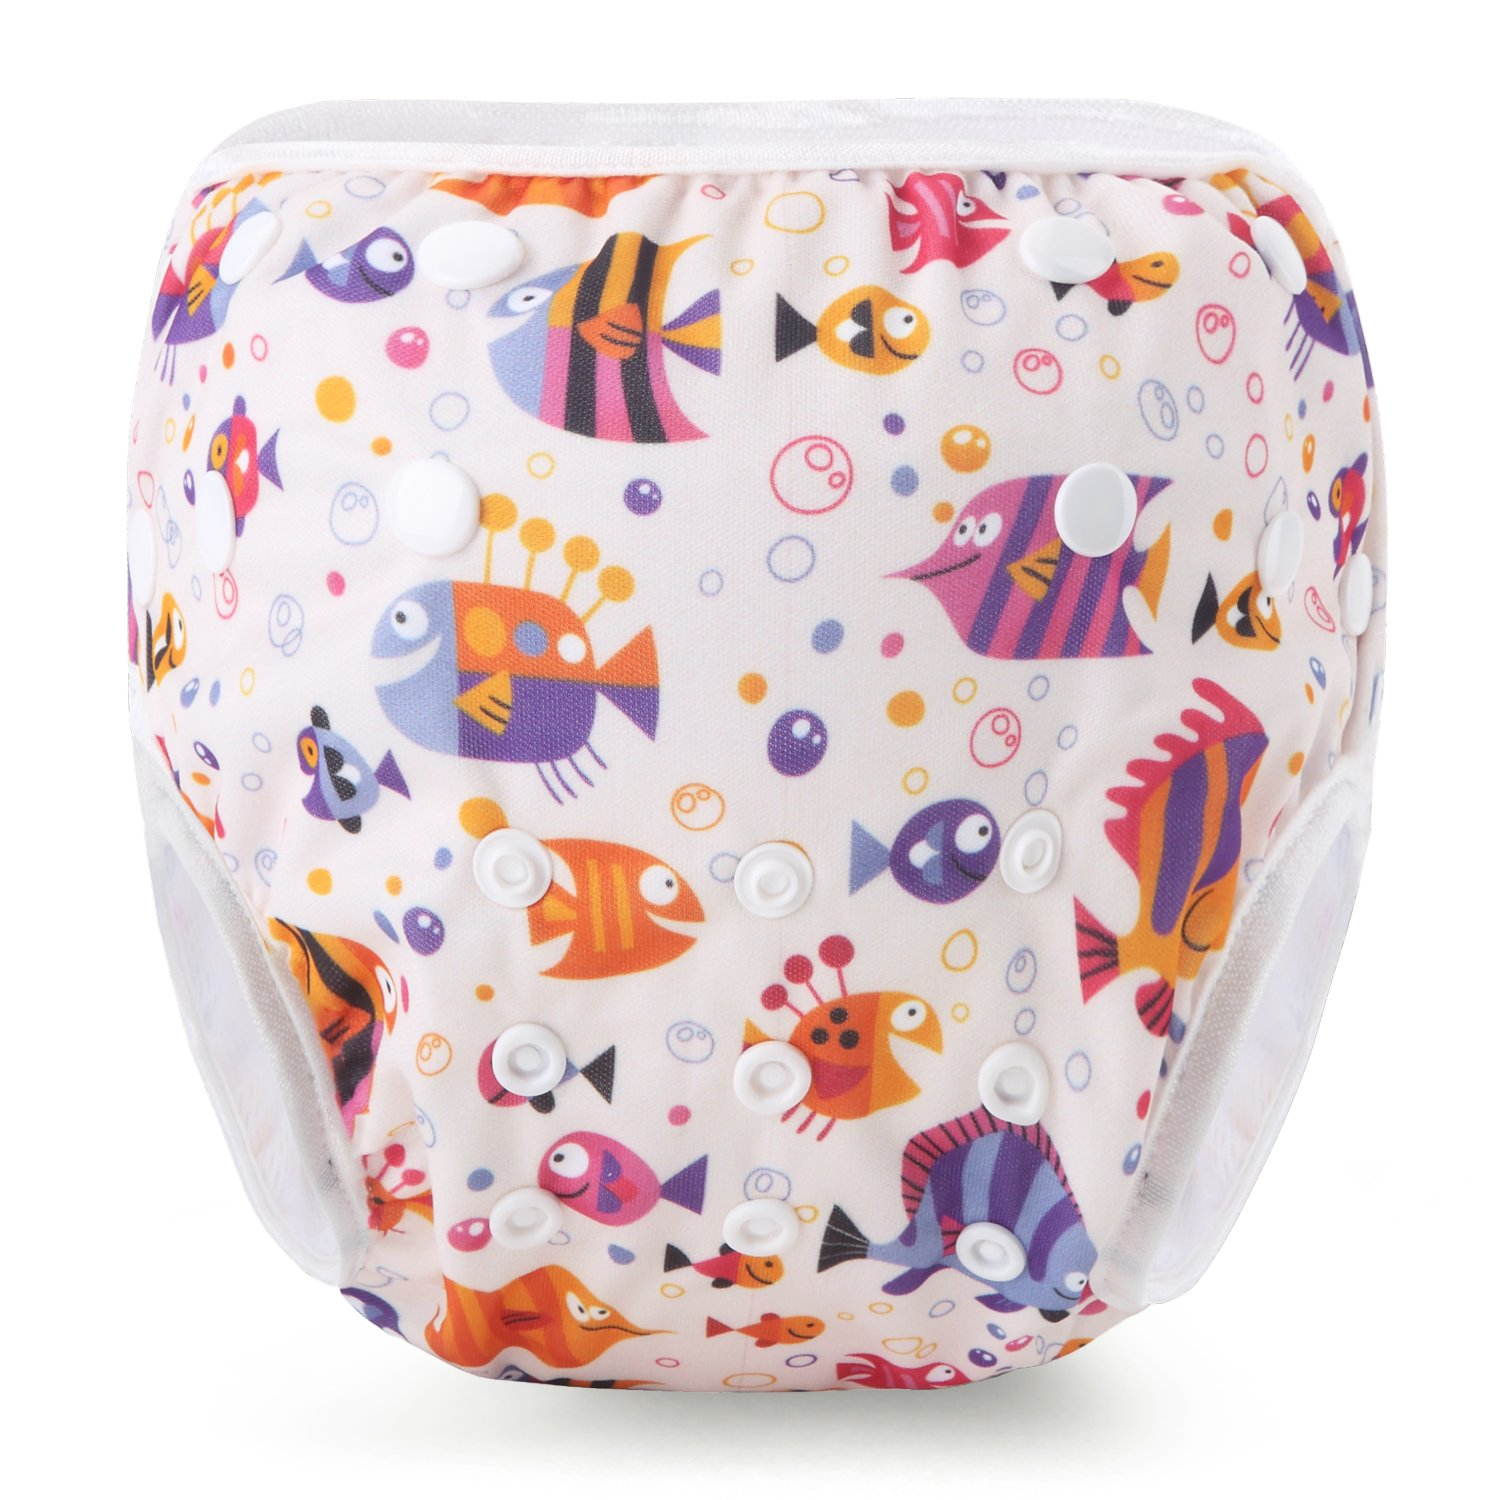 Martofbaby Baby Swimming Nappy Diapers Waterproof Cover Adjustable Snaps 0-3 Years